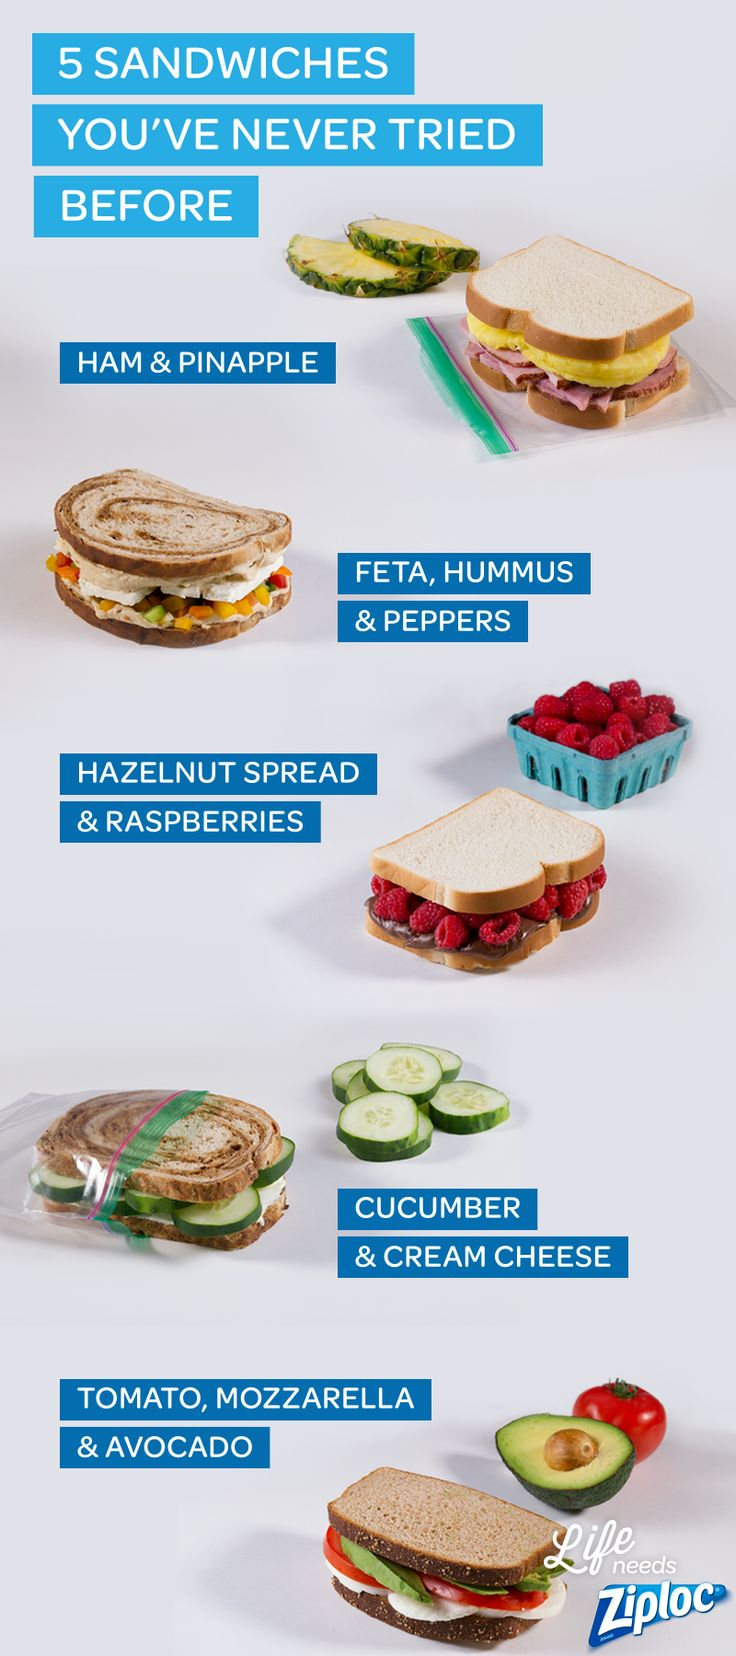 asics kinsei 4 neon pink Don  t fall into a school lunch rut  Try new sandwich combos like ham and pineapple  chocolate hazelnut spread and raspberries  cucumbers and cream cheese  avocado and mozzarella  or hummus and chopped peppers  Great sandwich inspiration from Ziploc